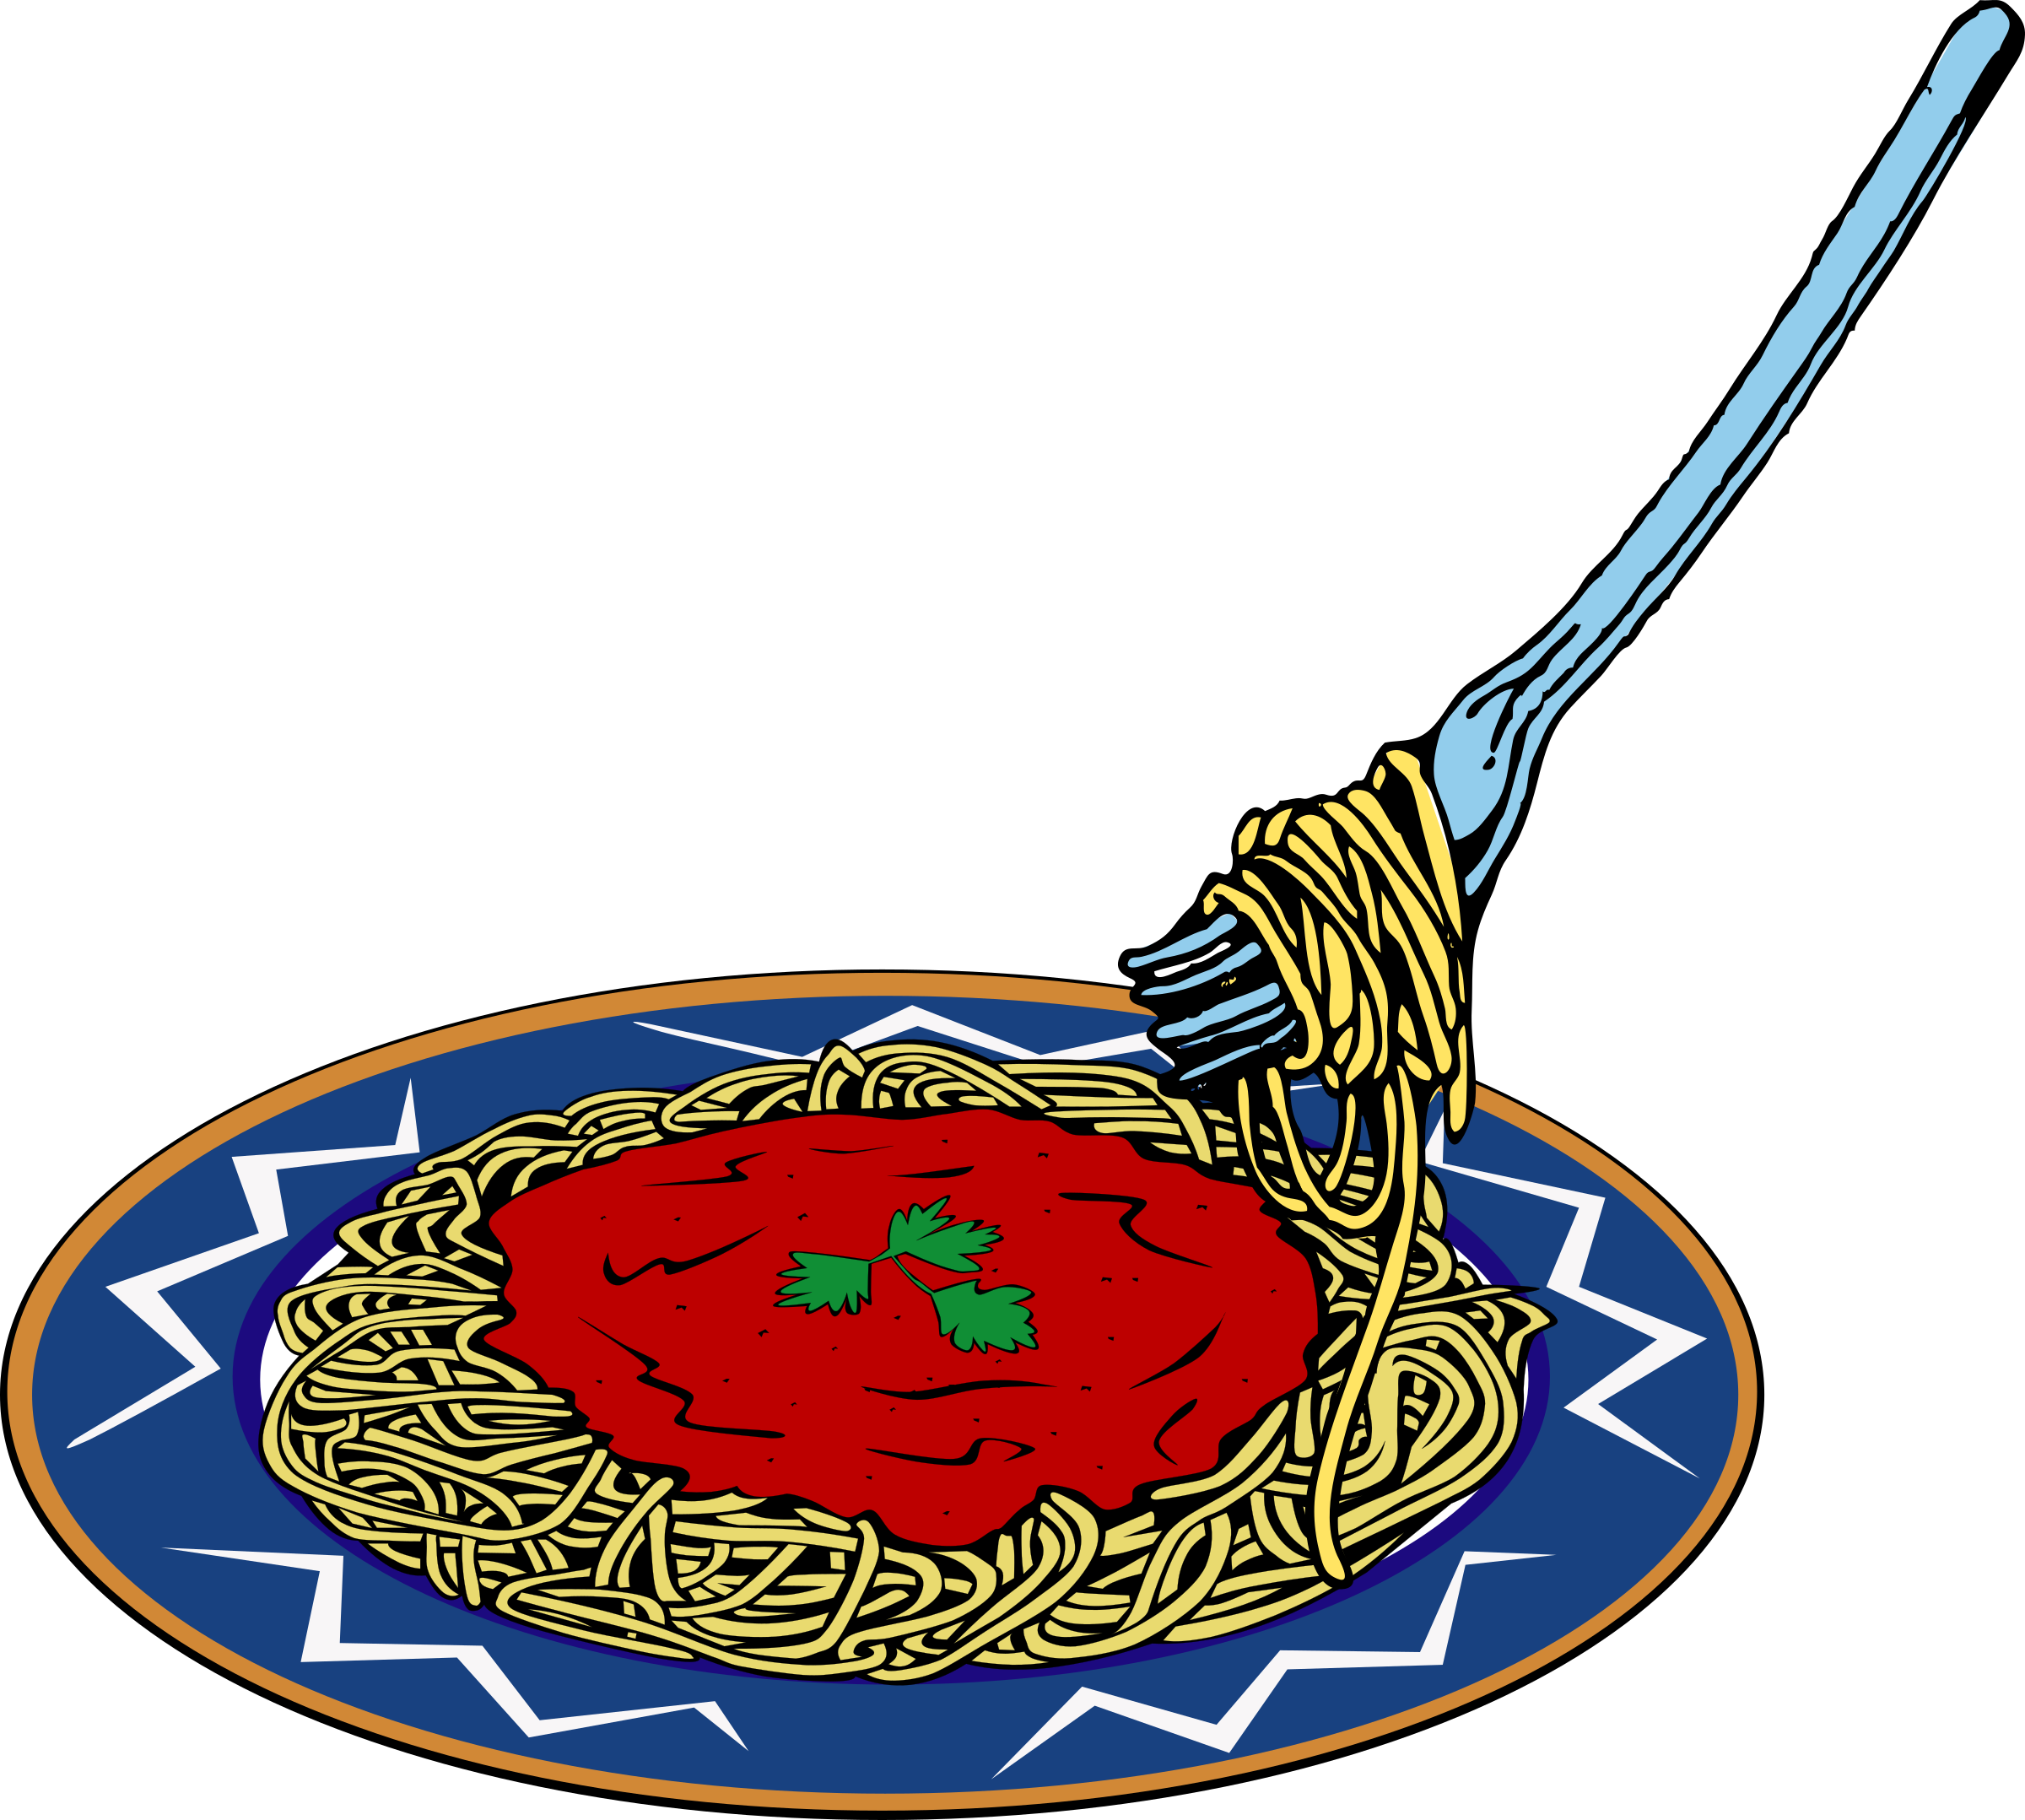 Luncheon clipart spaghetti. Big image png